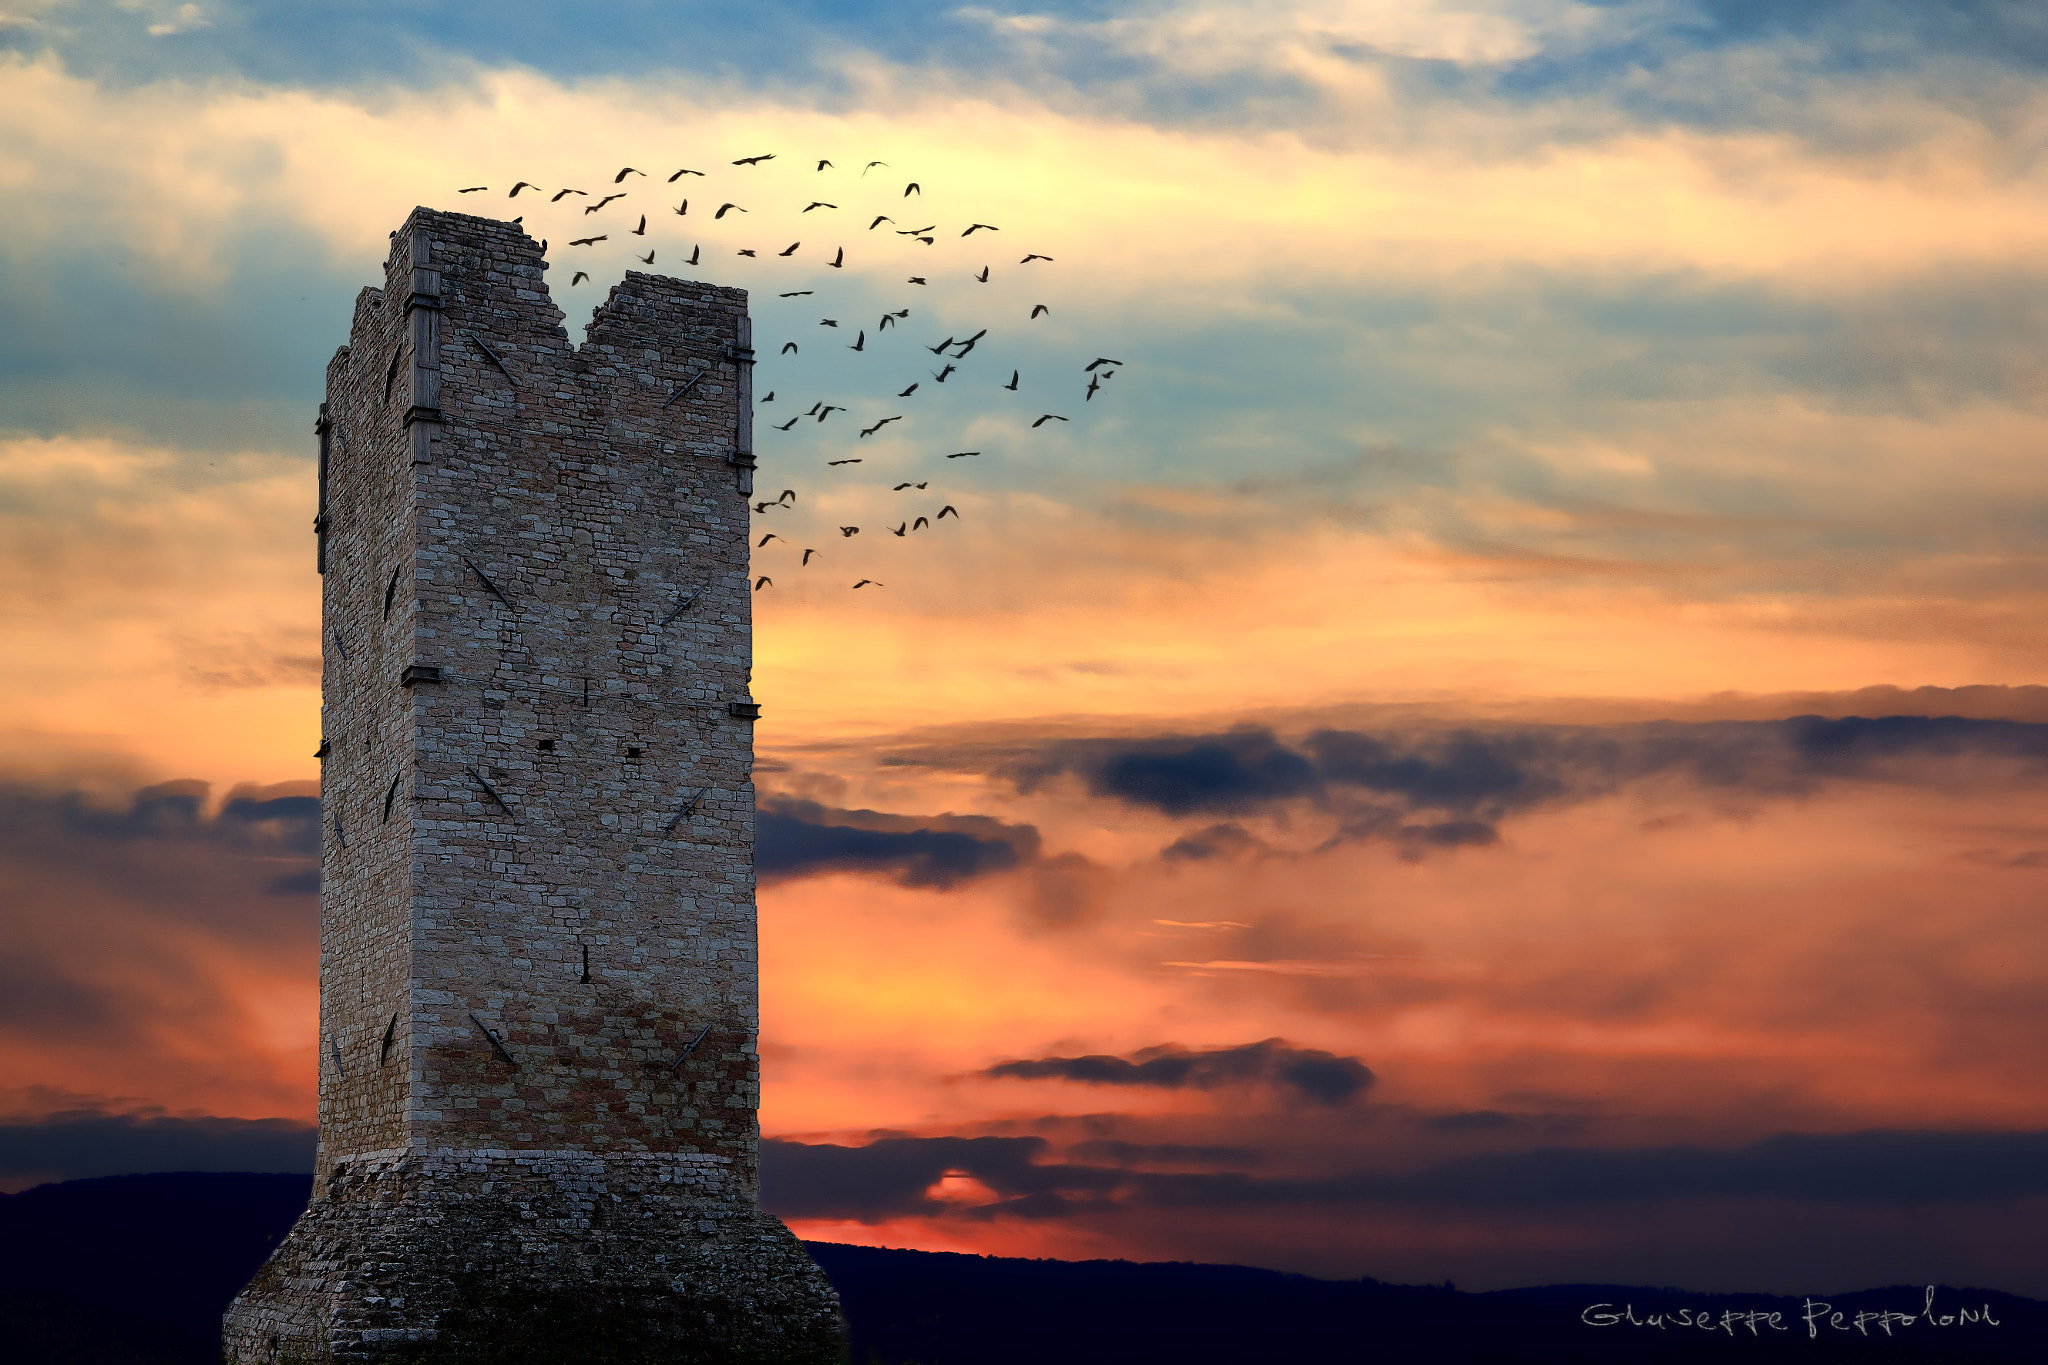 Photograph The tower by Giuseppe  Peppoloni on 500px